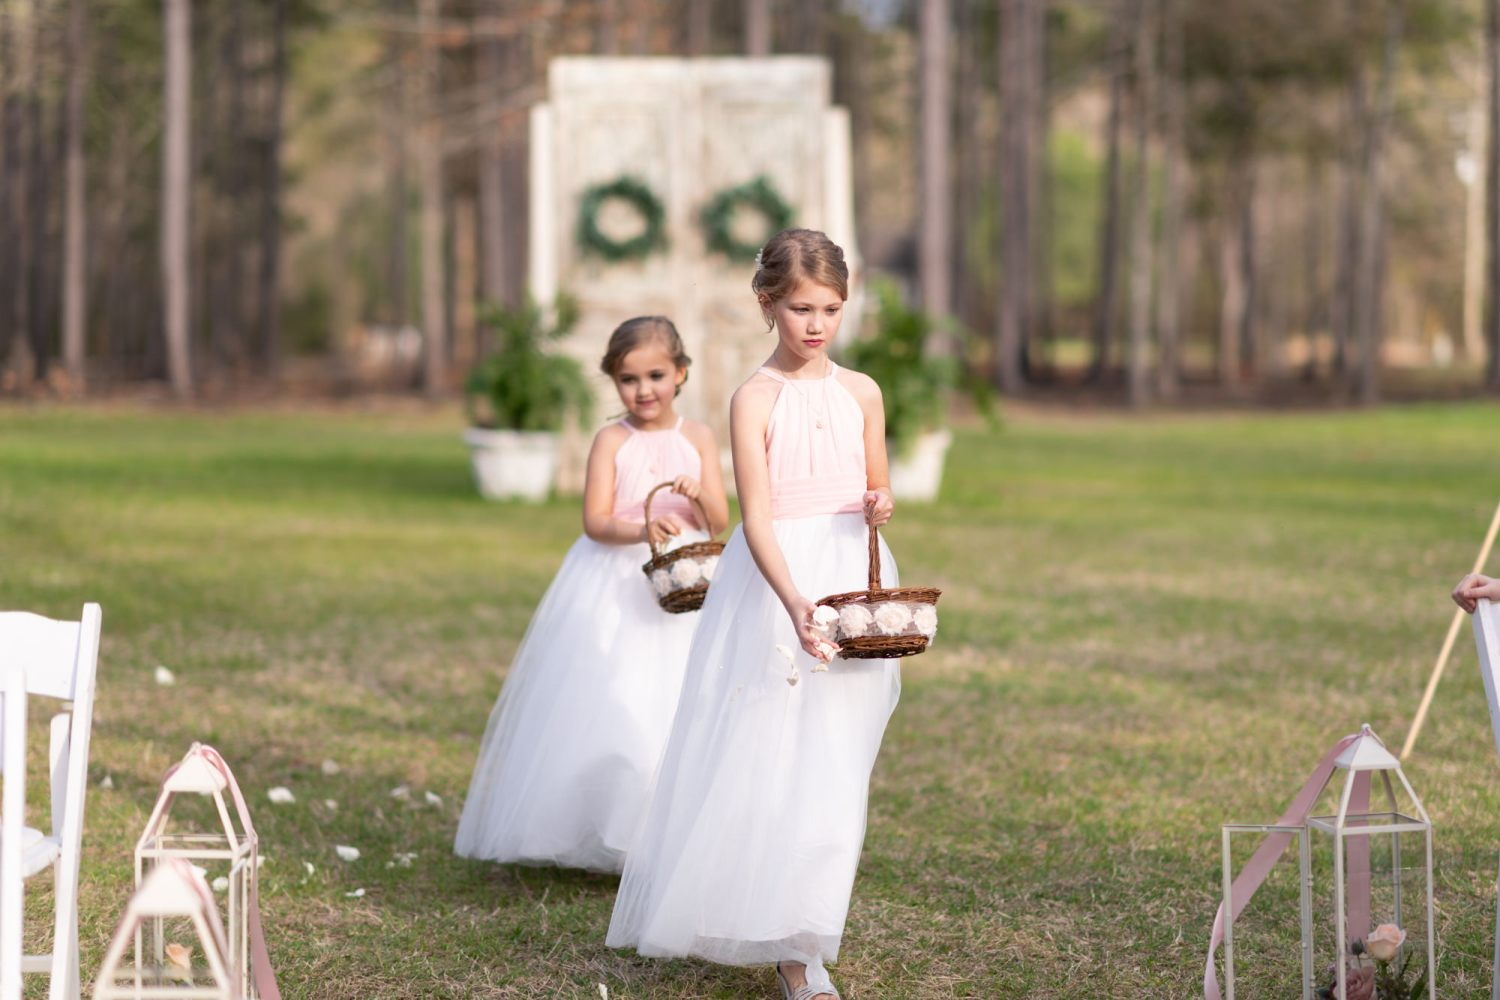 Flower girls throwing the flowers  - Wildhorse at Parker Farms